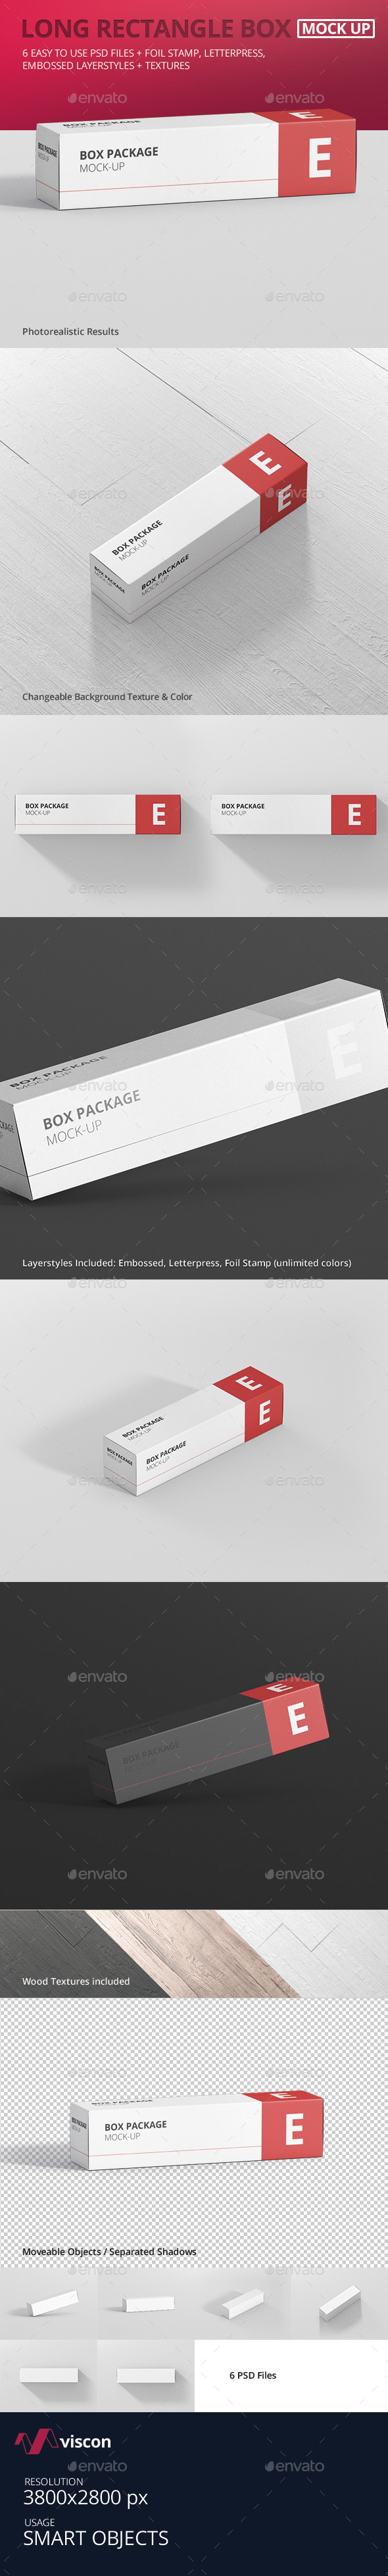 Package Box Mock-Up - Long Rectangle